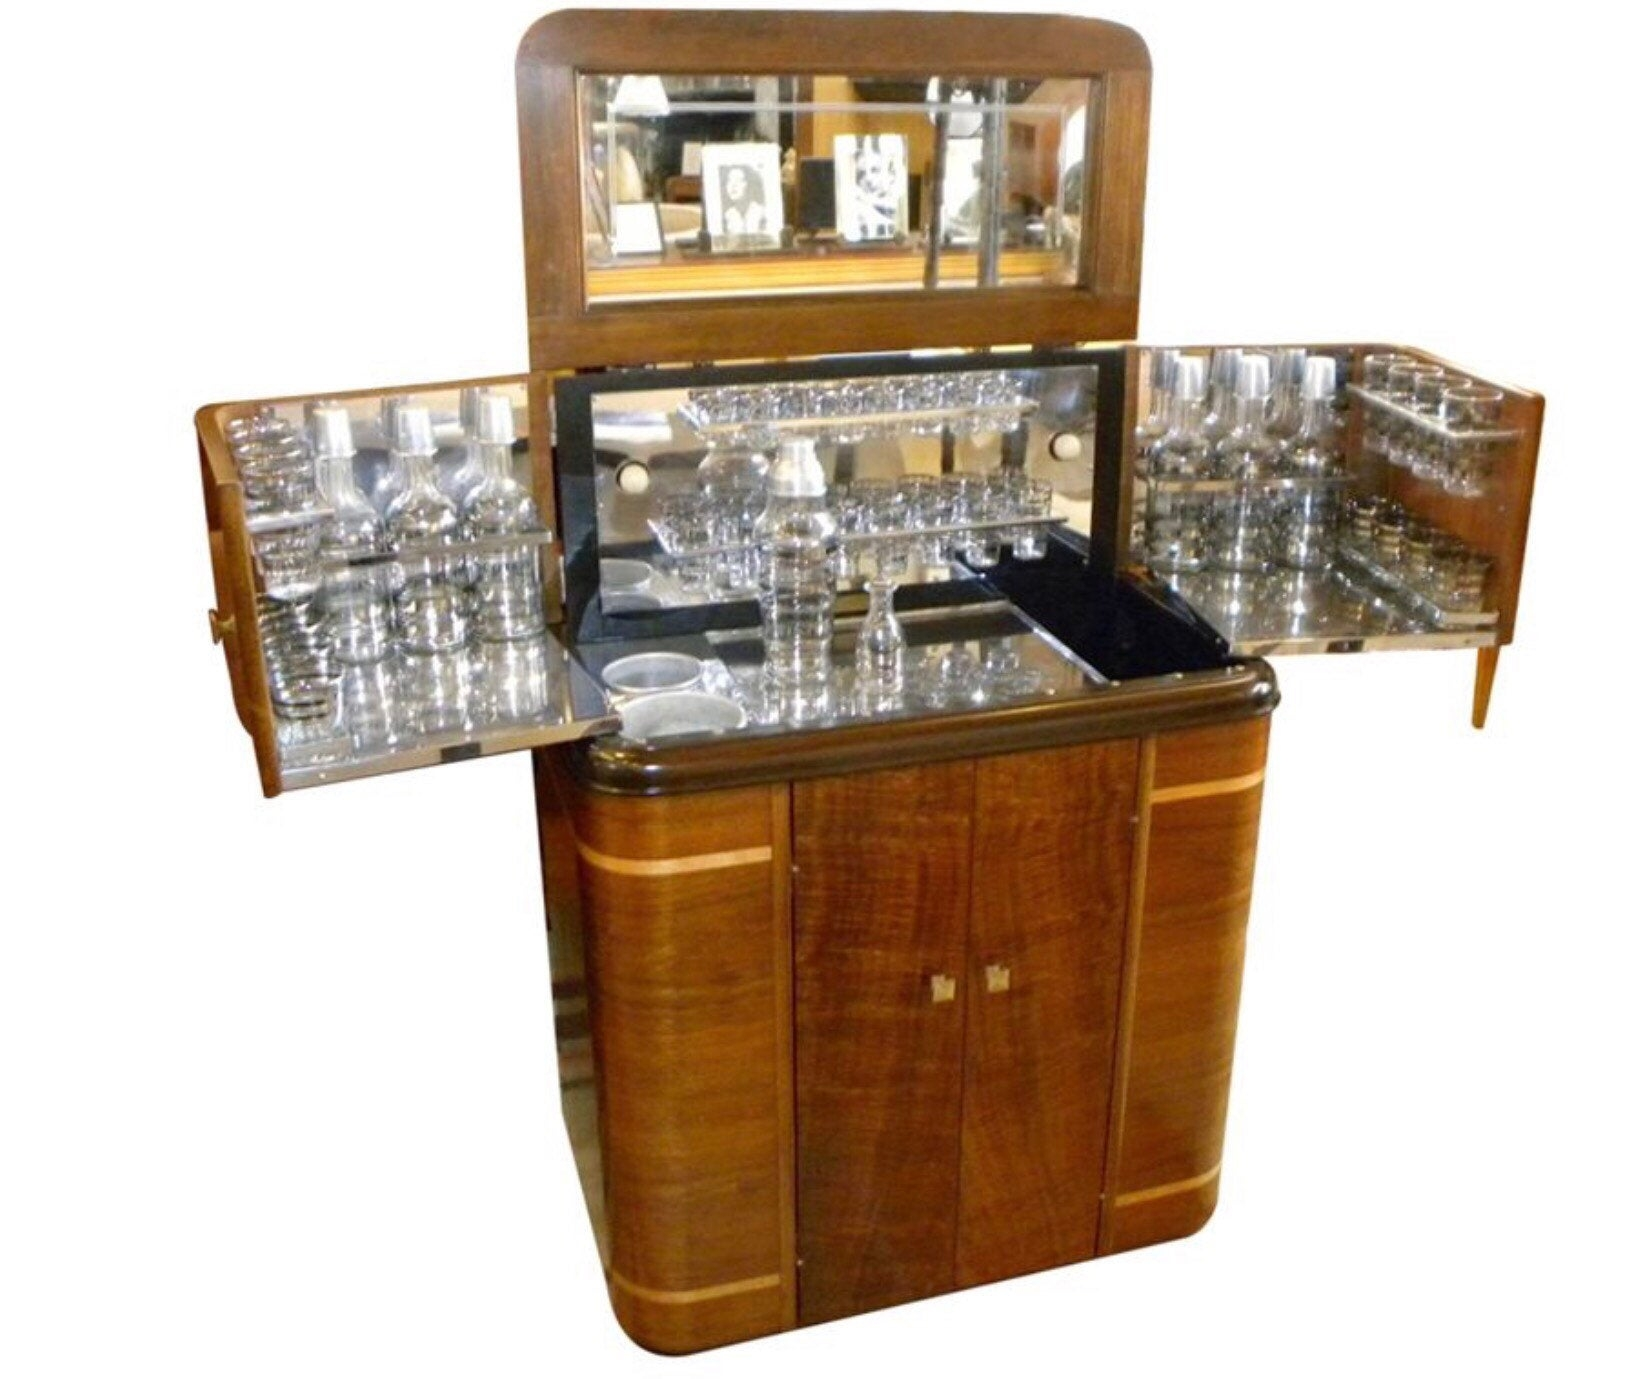 1930s american art deco radio bar o radiobar glasses complete